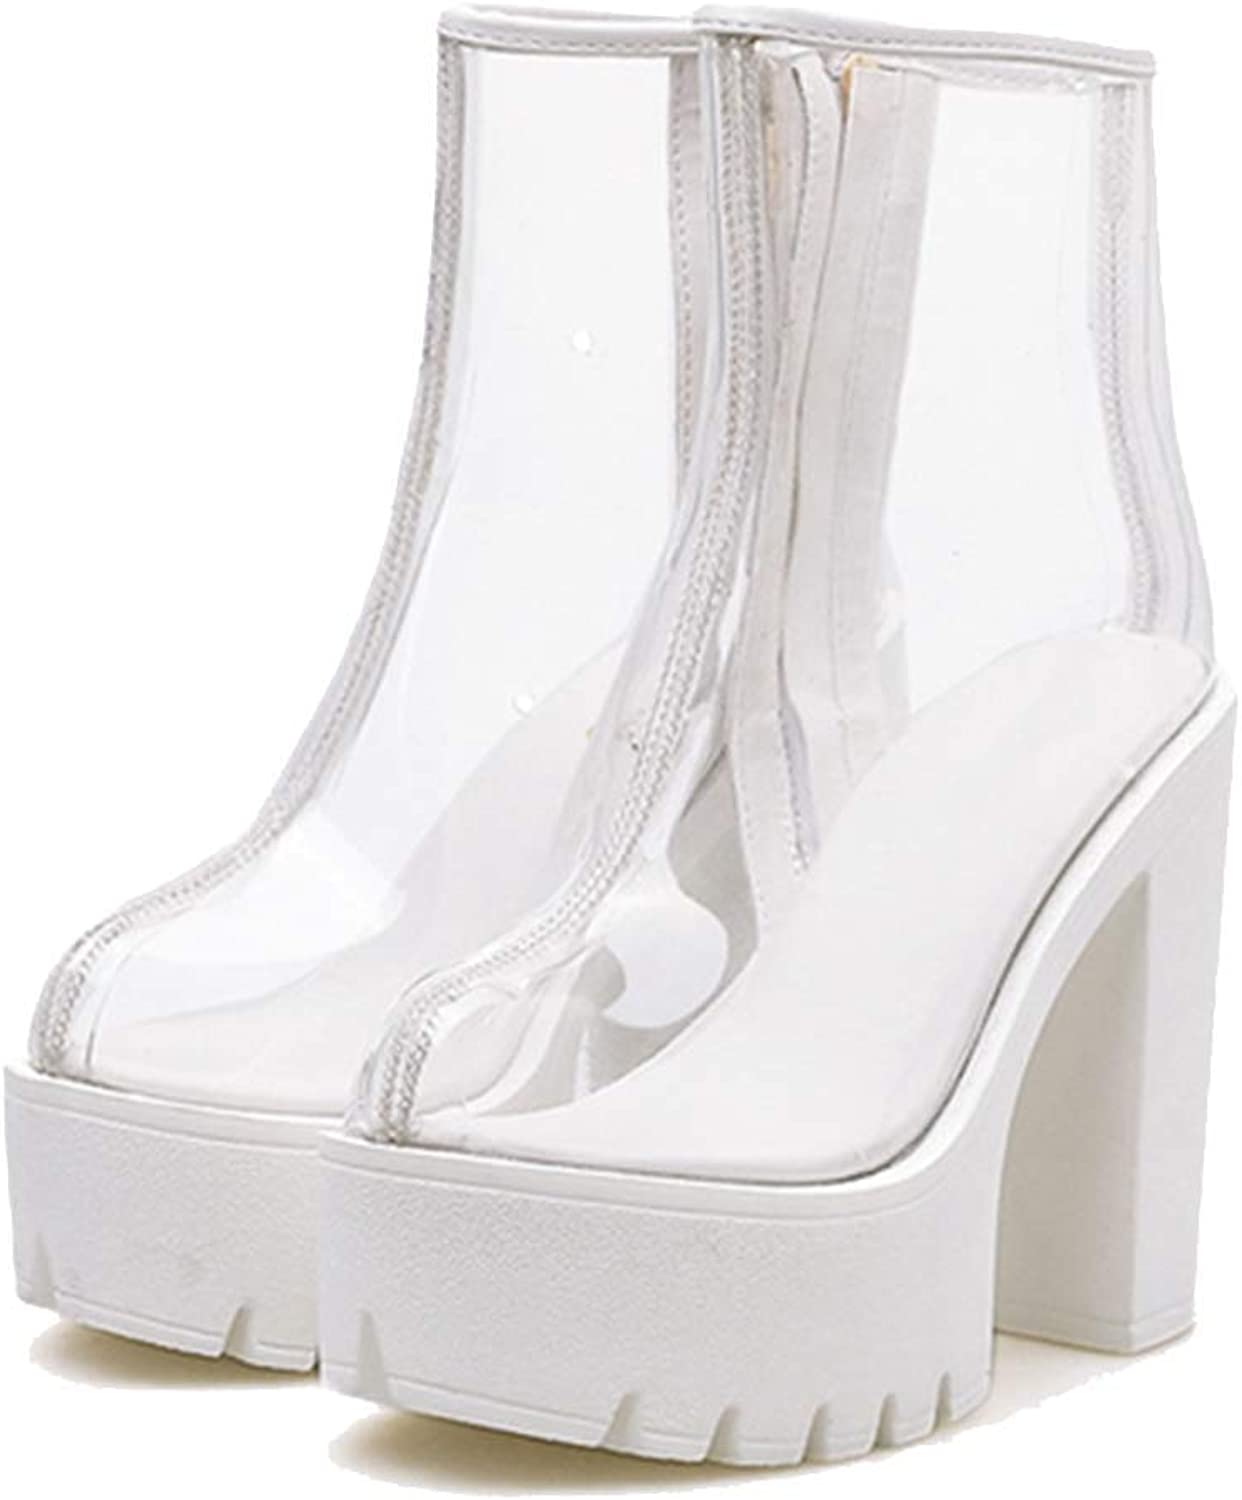 Elsa Wilcox Transparent Boots for Women Spring Autumn Ladies shoes Ankle Boots Sexy High Heels Platform Boots